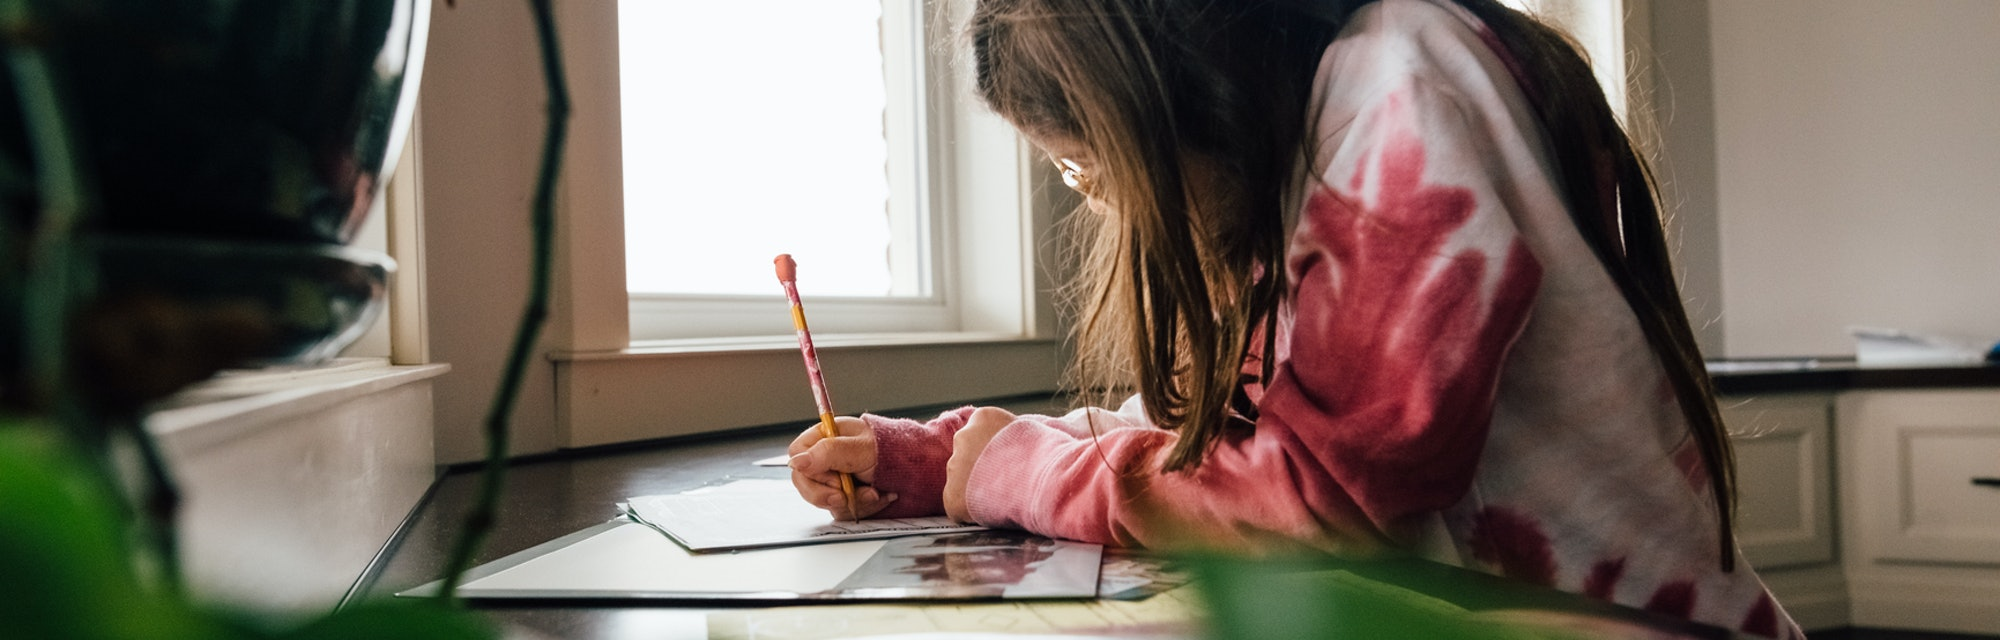 Pre-teen girl with brunette hair is working on school work in the kitchen at home. Girl is wearing glasses and tie dyed sweatshirt.